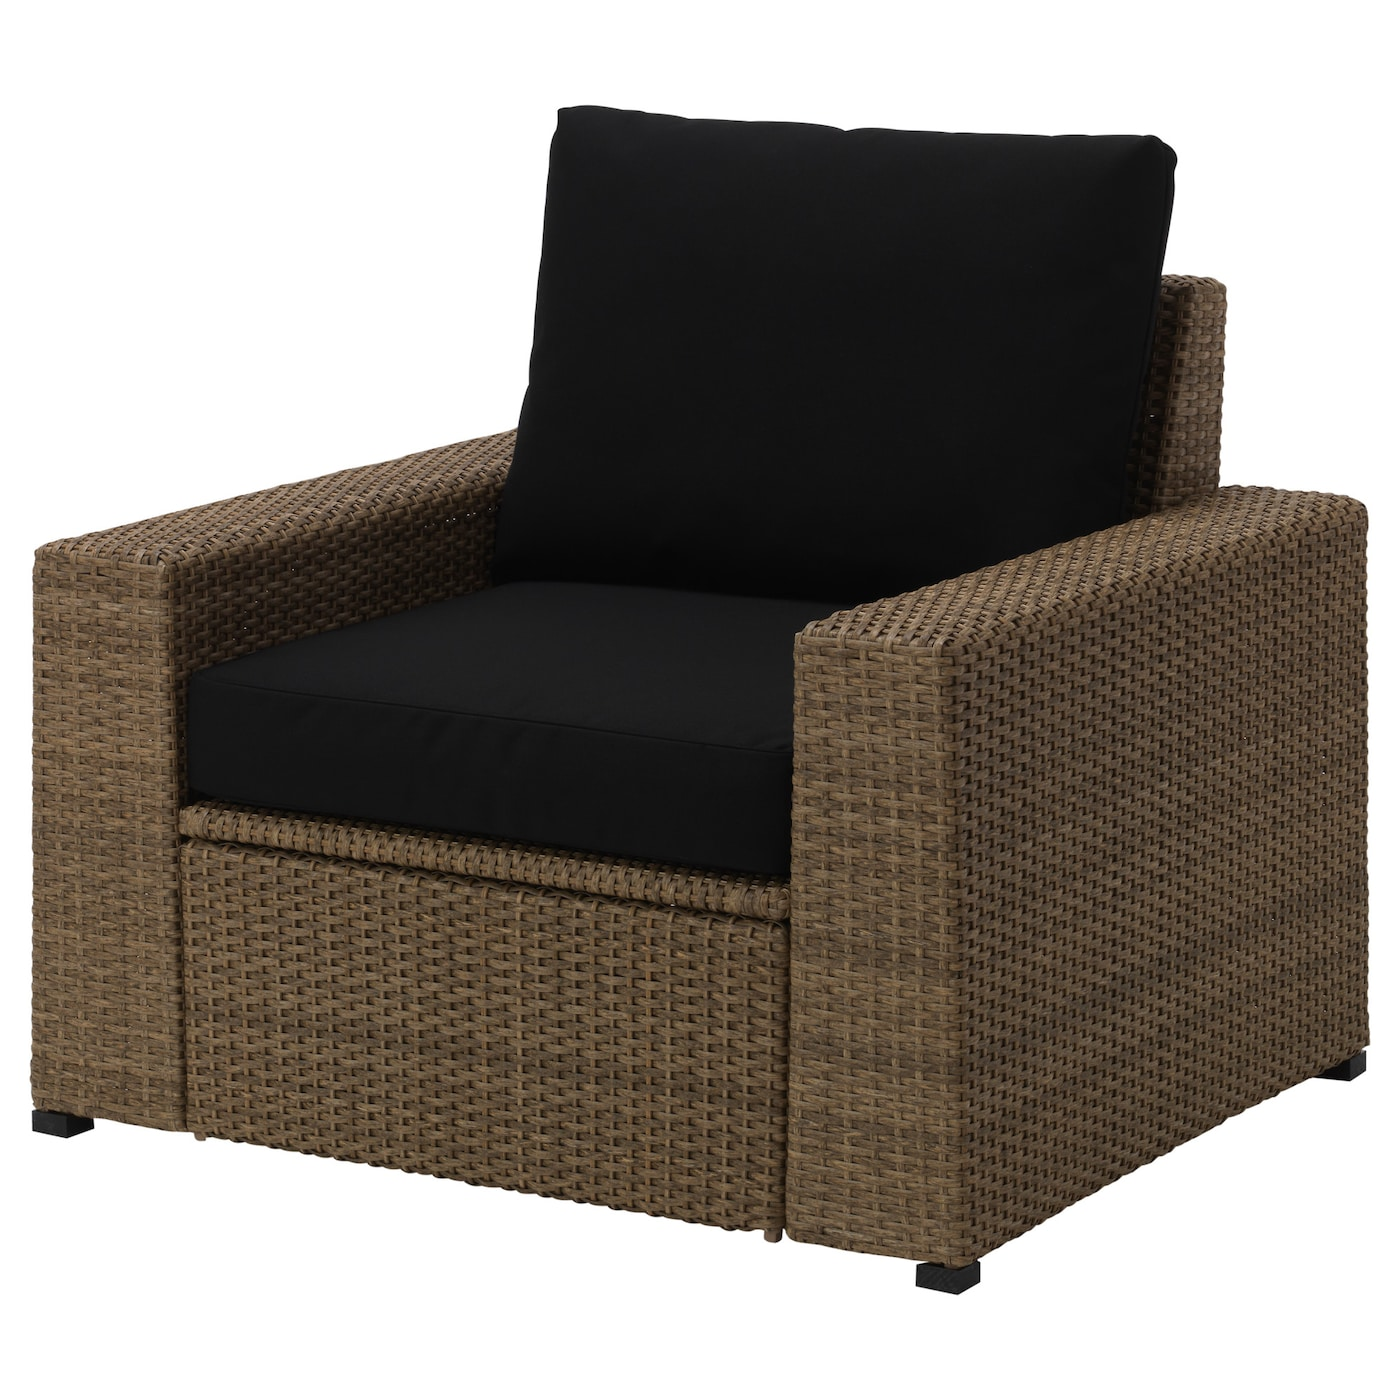 IKEA SOLLERÖN armchair, outdoor The materials in this outdoor furniture require no maintenance.